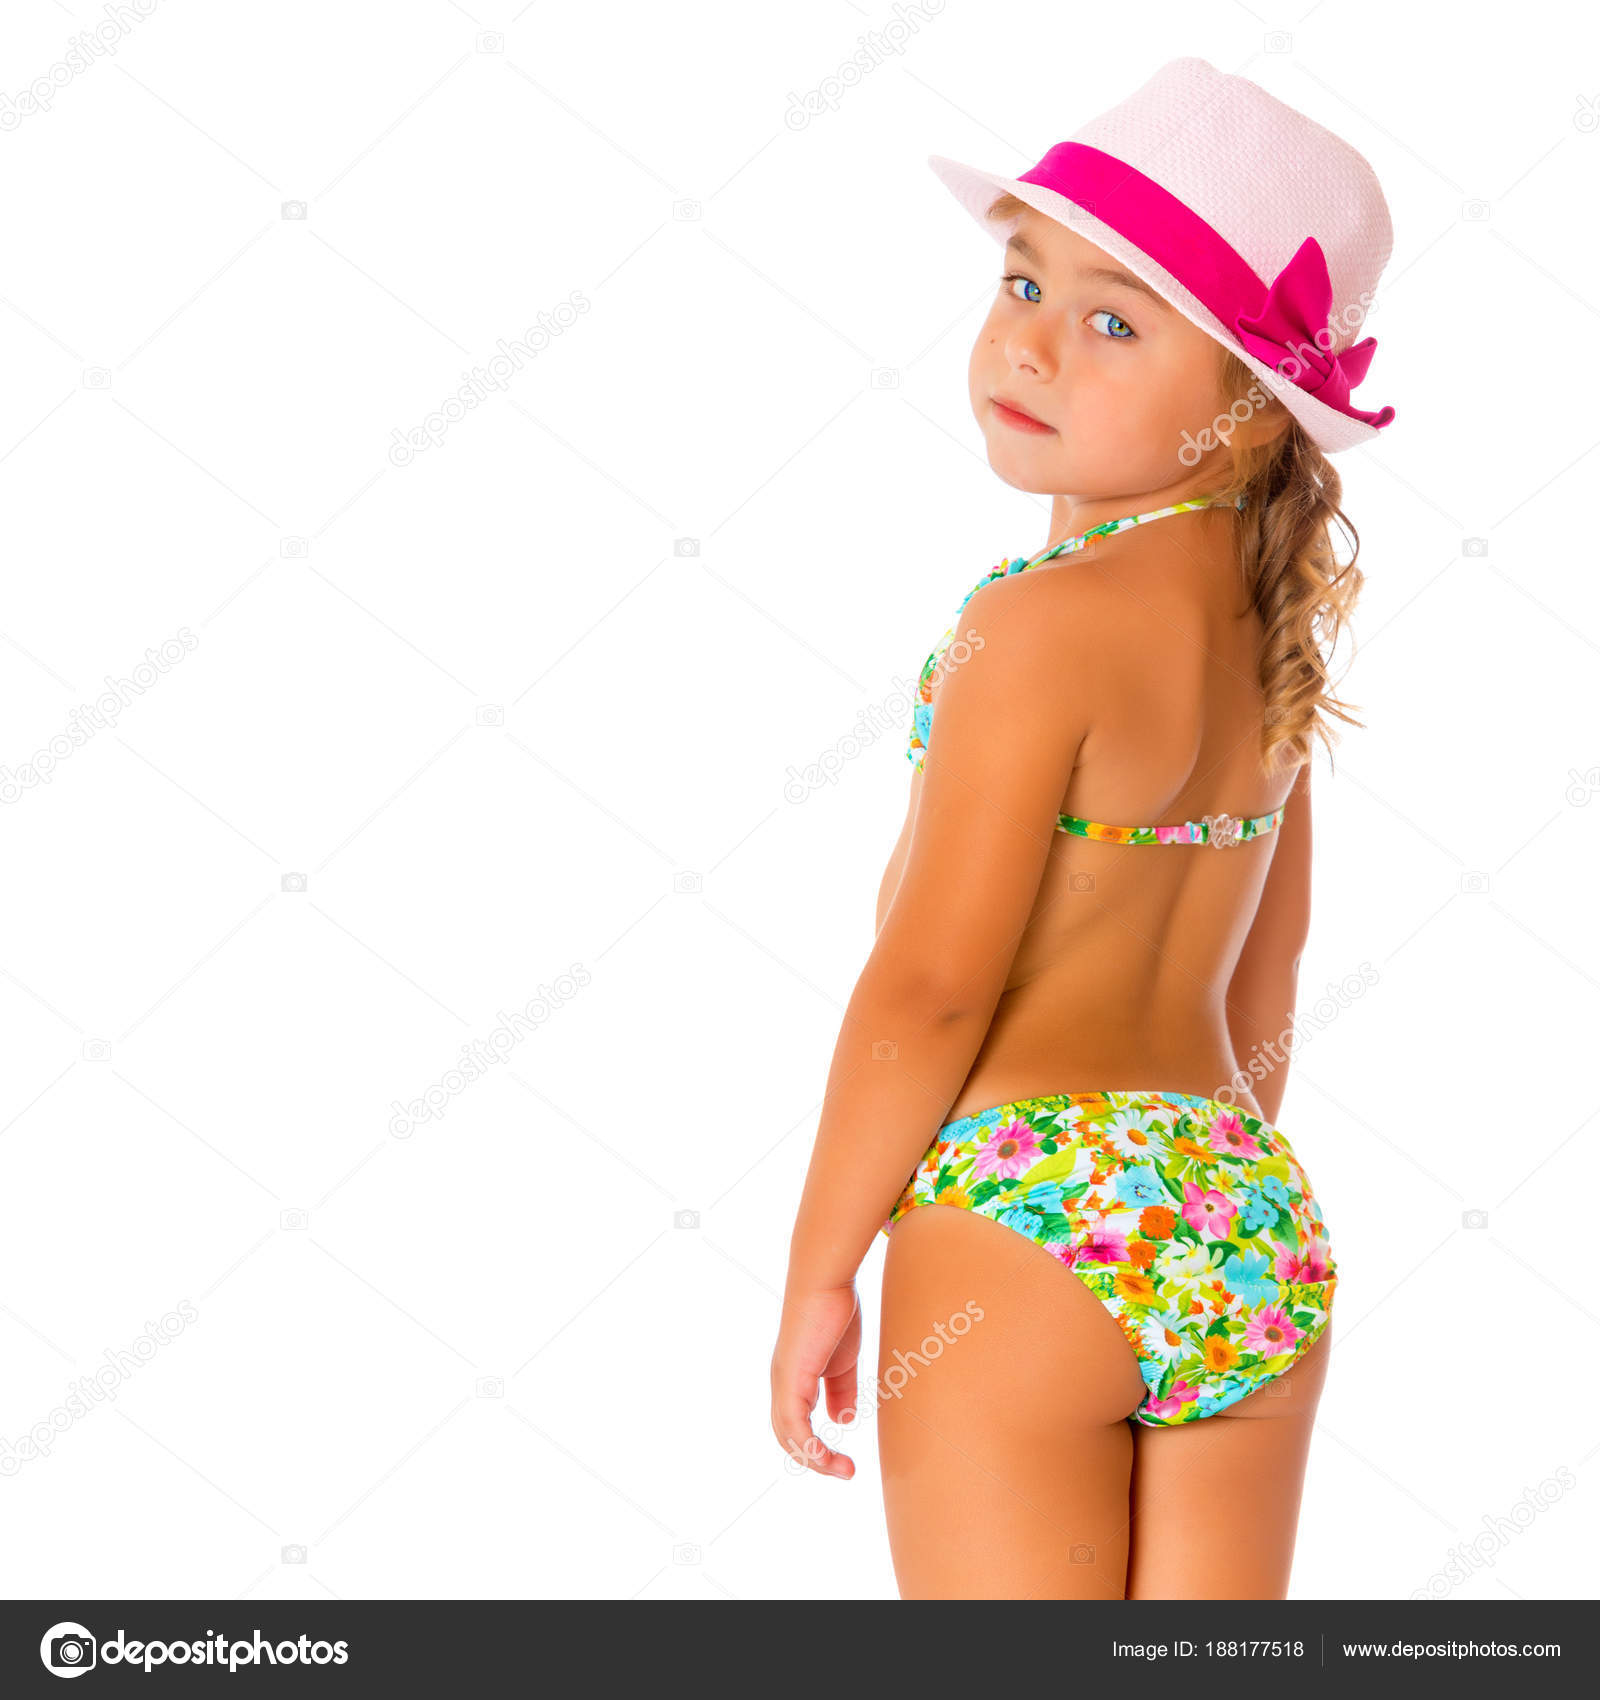 5e5ebd40b6f7 Beautiful little tanned girl in a swimsuit and a hat. The concept of summer  family vacations, rest on the sea, beautiful tan. Isolated on white  background.